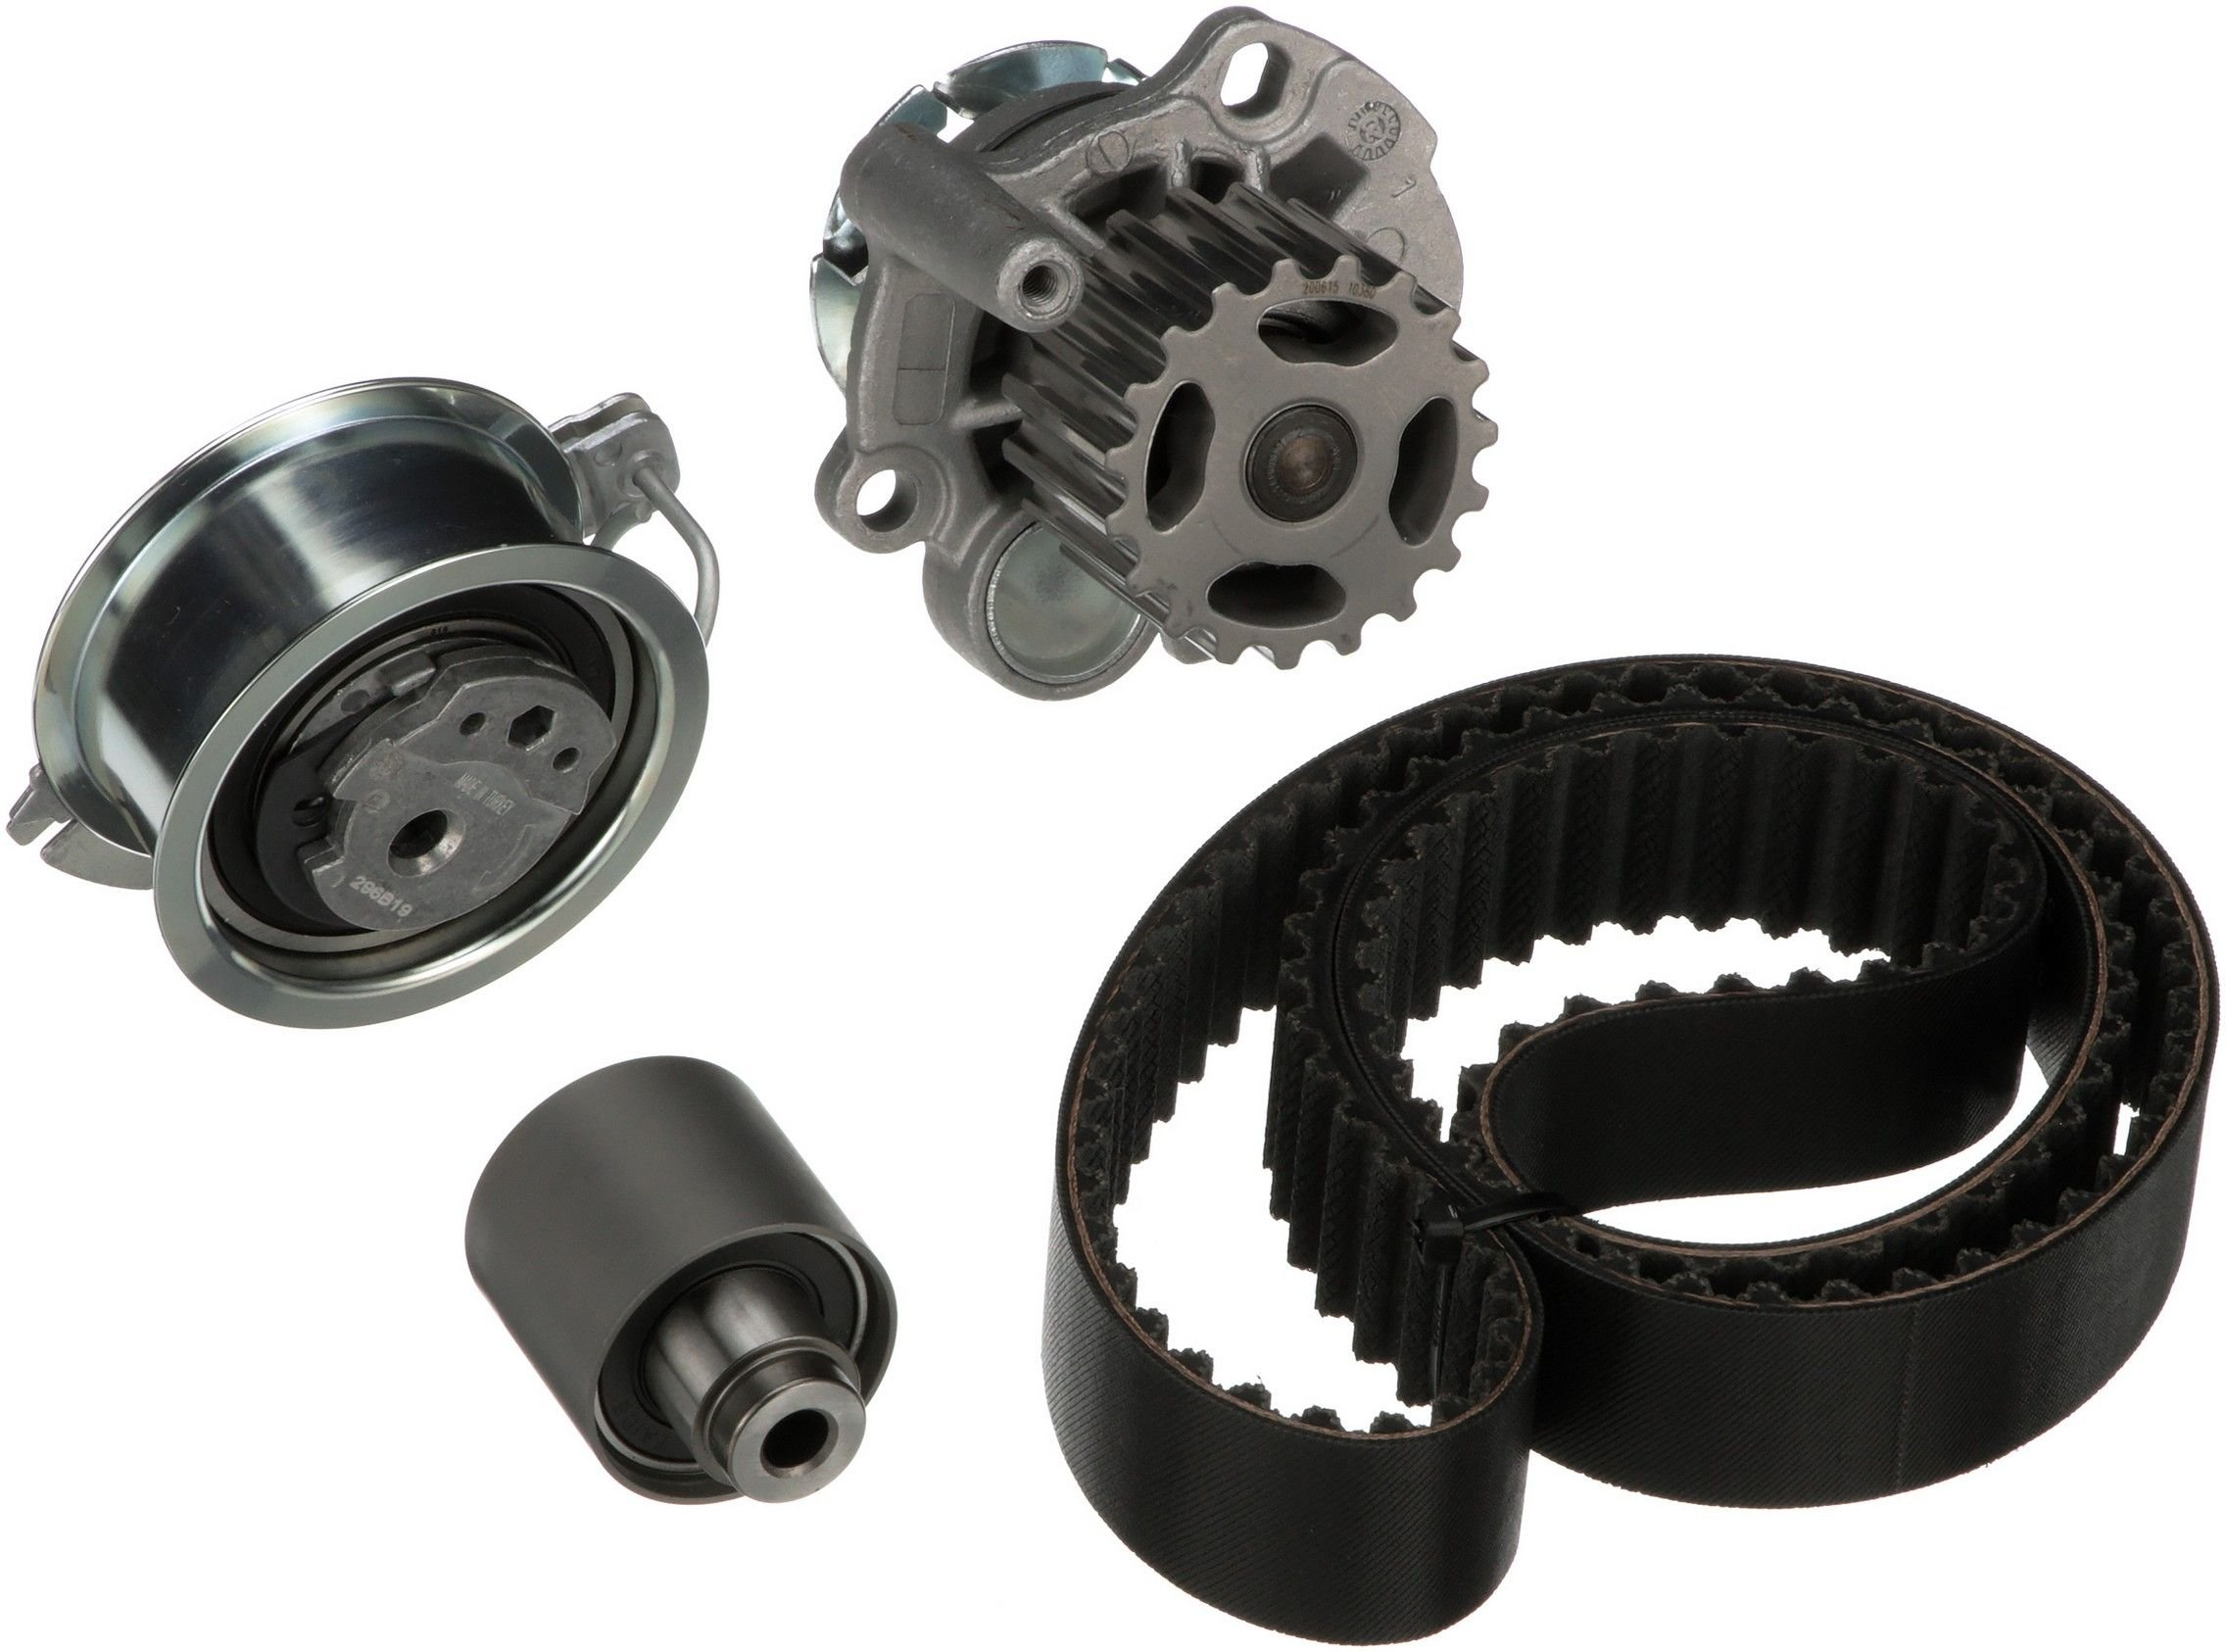 Volkswagen Jetta Engine Timing Belt Kit With Water Pump Replacement Dayco Idler 2005 4 Cyl 19l Gates Tckwp333m W Metal Impeller Interference Application